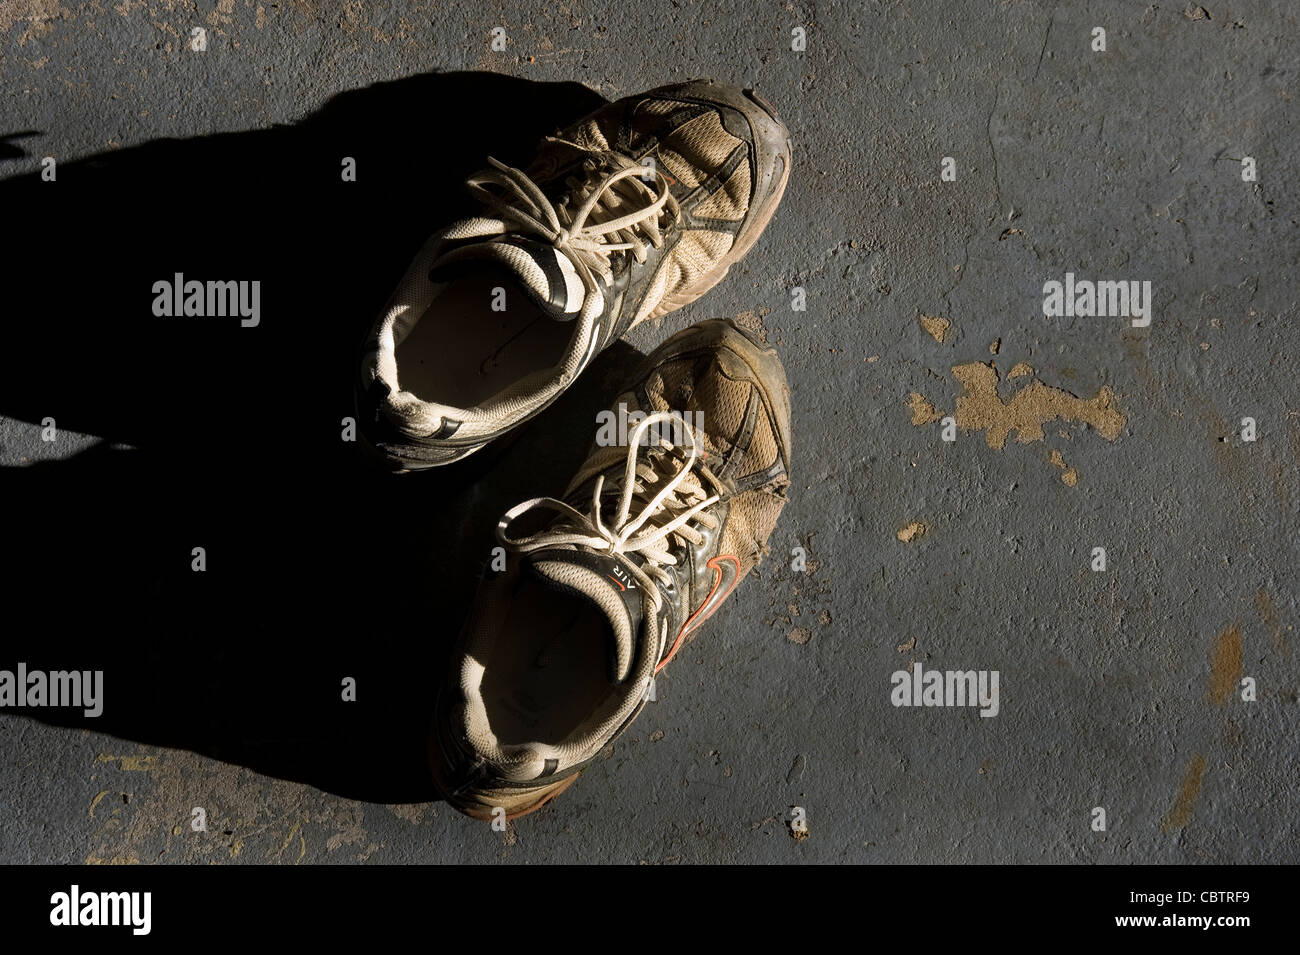 Old Dirty Sneakers Shoes, In Sunlight, Concrete Floor - Stock Image